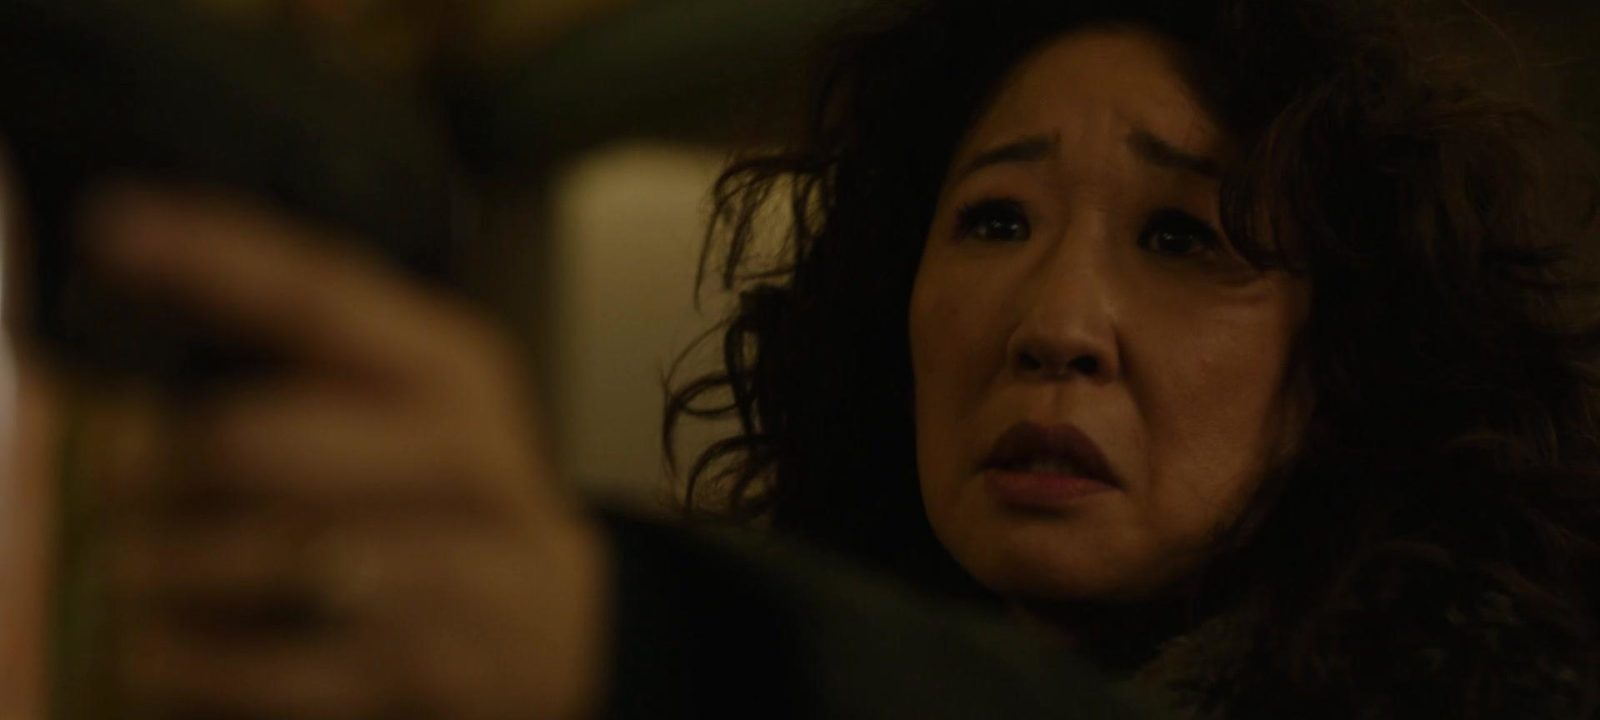 Killing_Eve_ISSUES_30_NS_Sun_April_8_at_8pm_YouTube_Preset_1920x1080_1187601475872